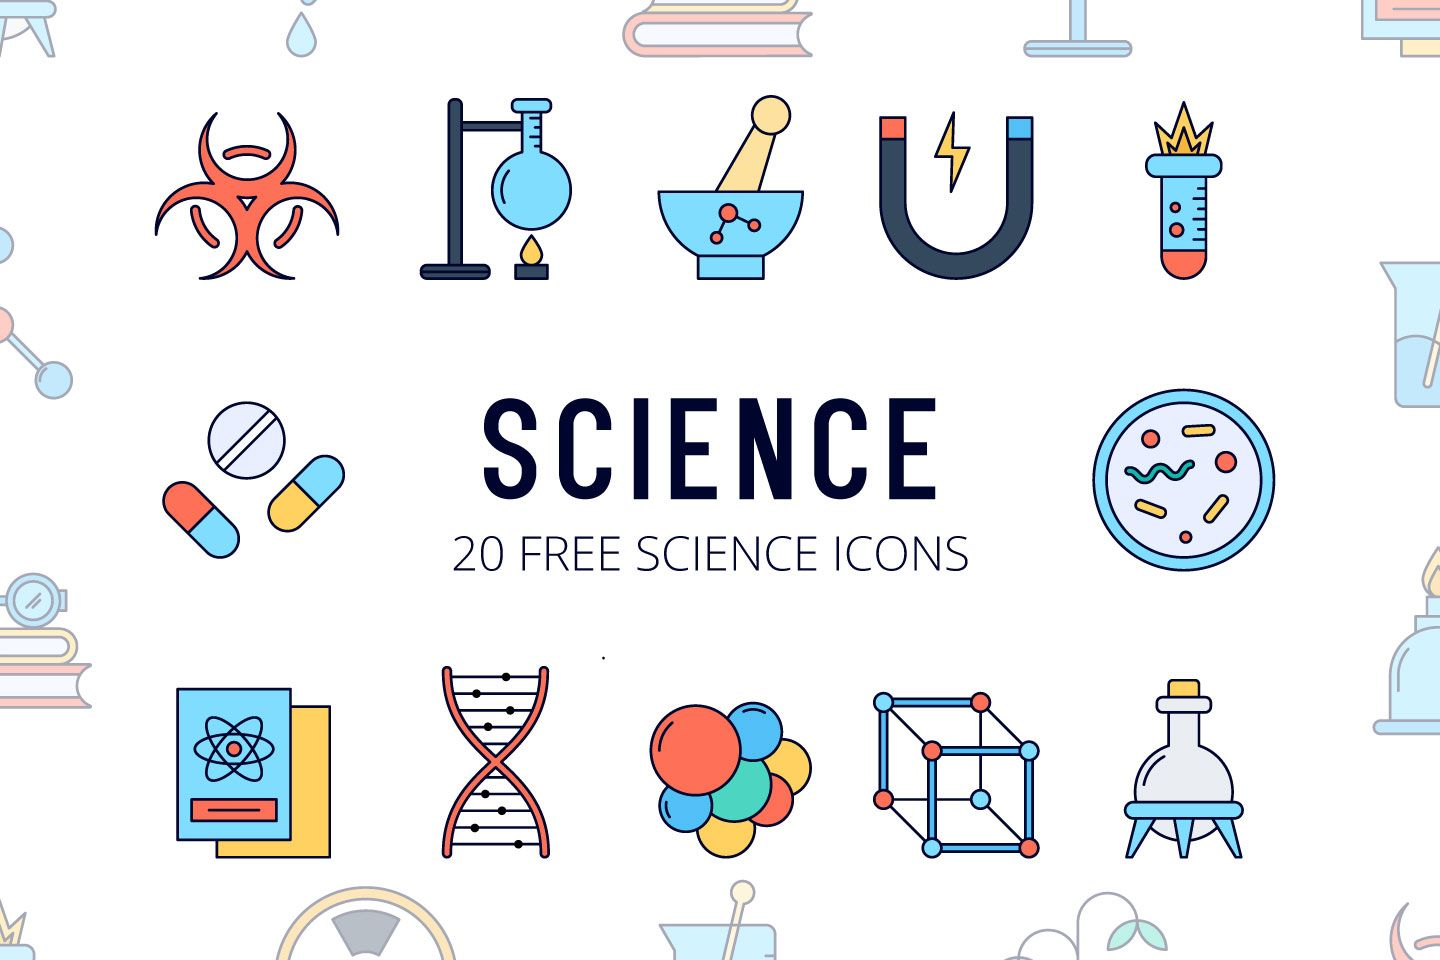 Science Vector Free Icon Set With Images